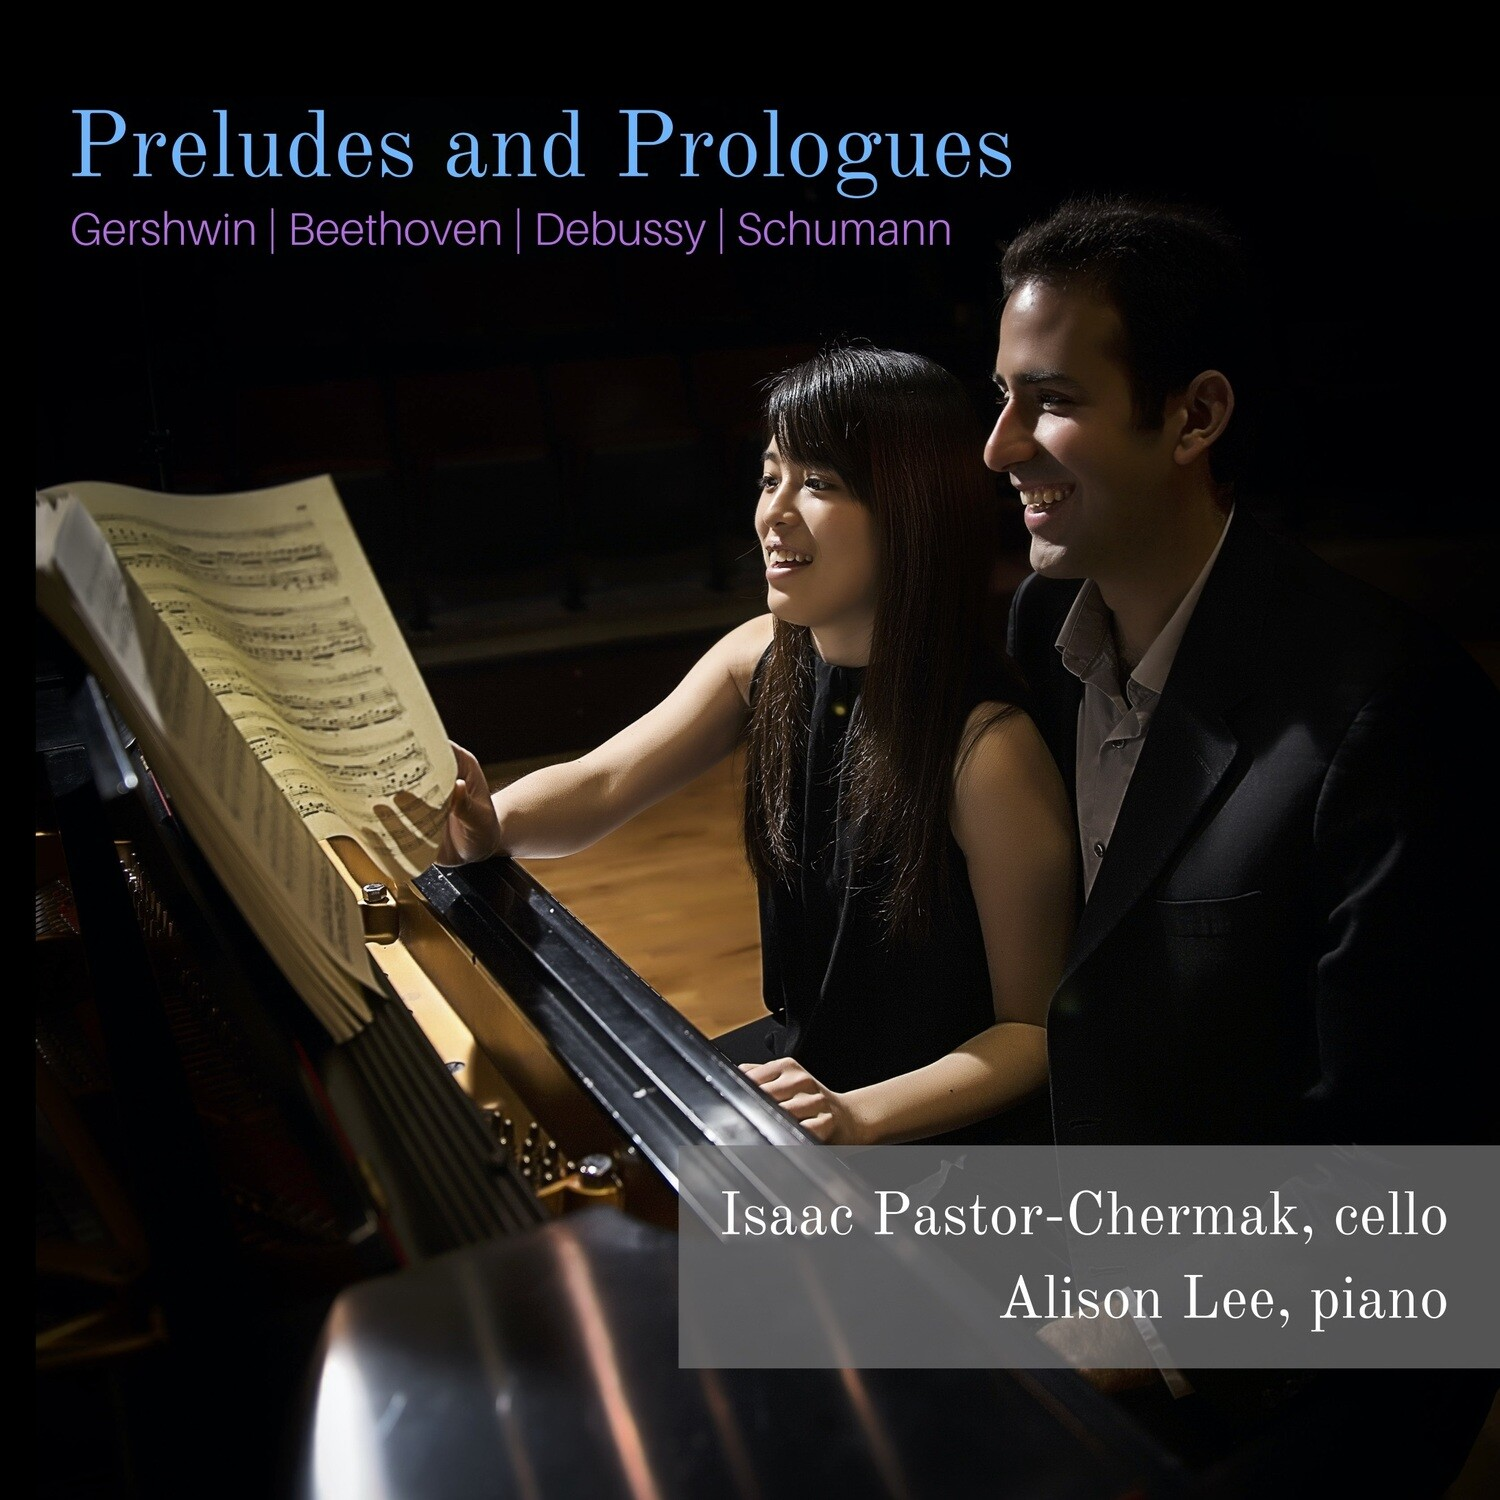 Preludes and Prologues (Isaac Pastor-Chermak and Alison Lee)